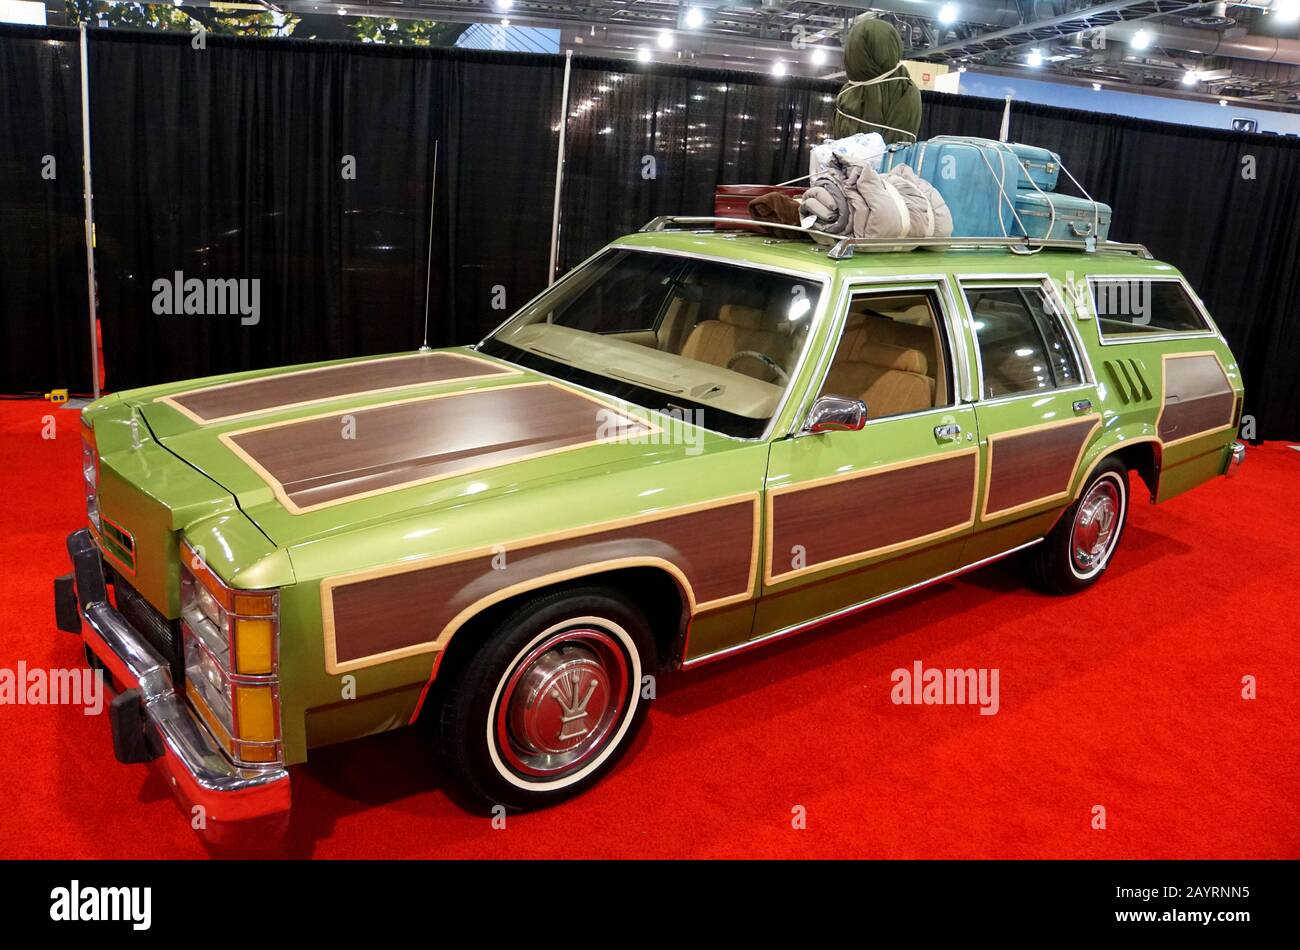 Philadelphia Pennsylvania U S A February 10 2019 The Original Griswold Station Wagon Car From The Movie Vacation Stock Photo Alamy